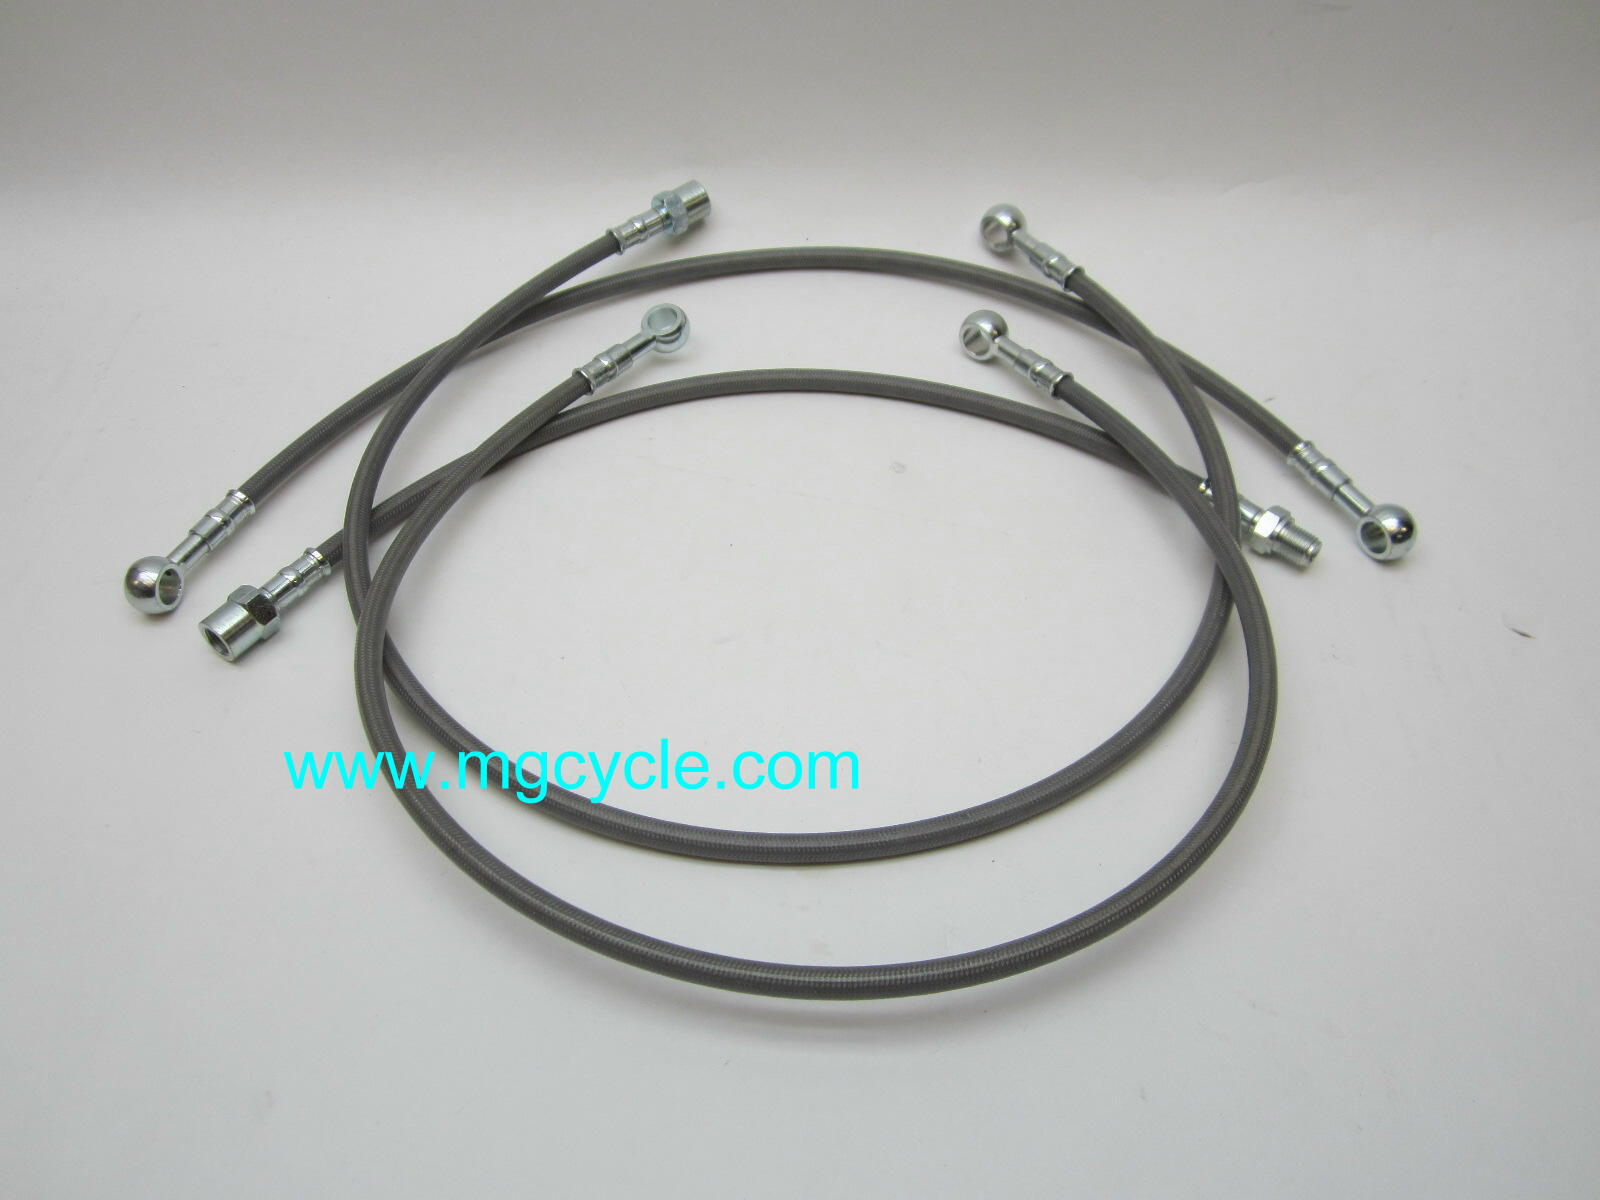 stainless brake line kit, 850 LeMans 1976-1978